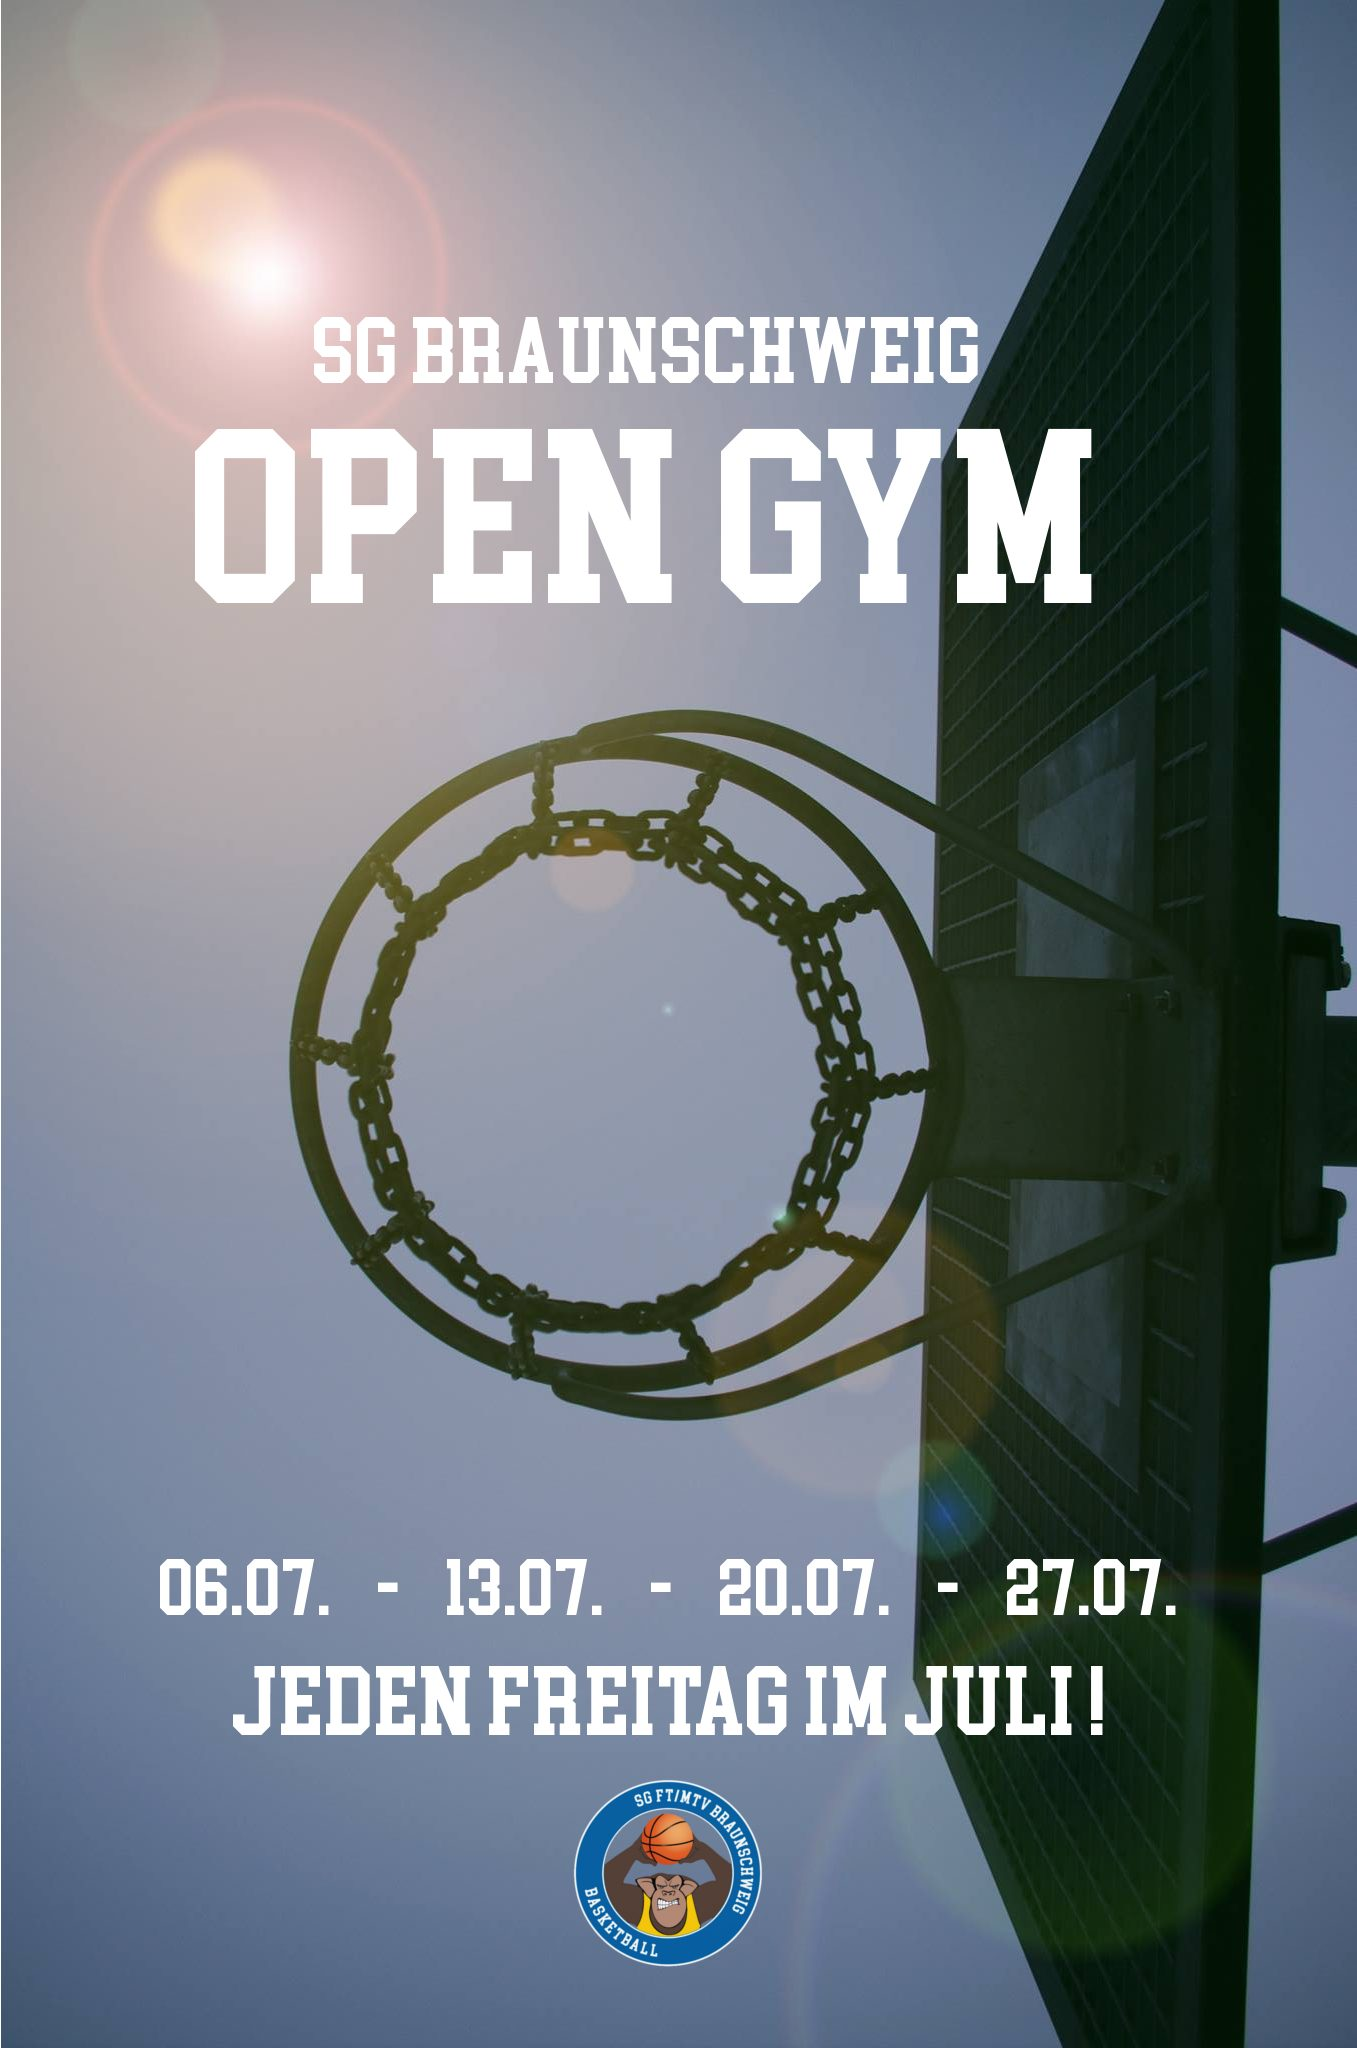 Open Gym 2018!